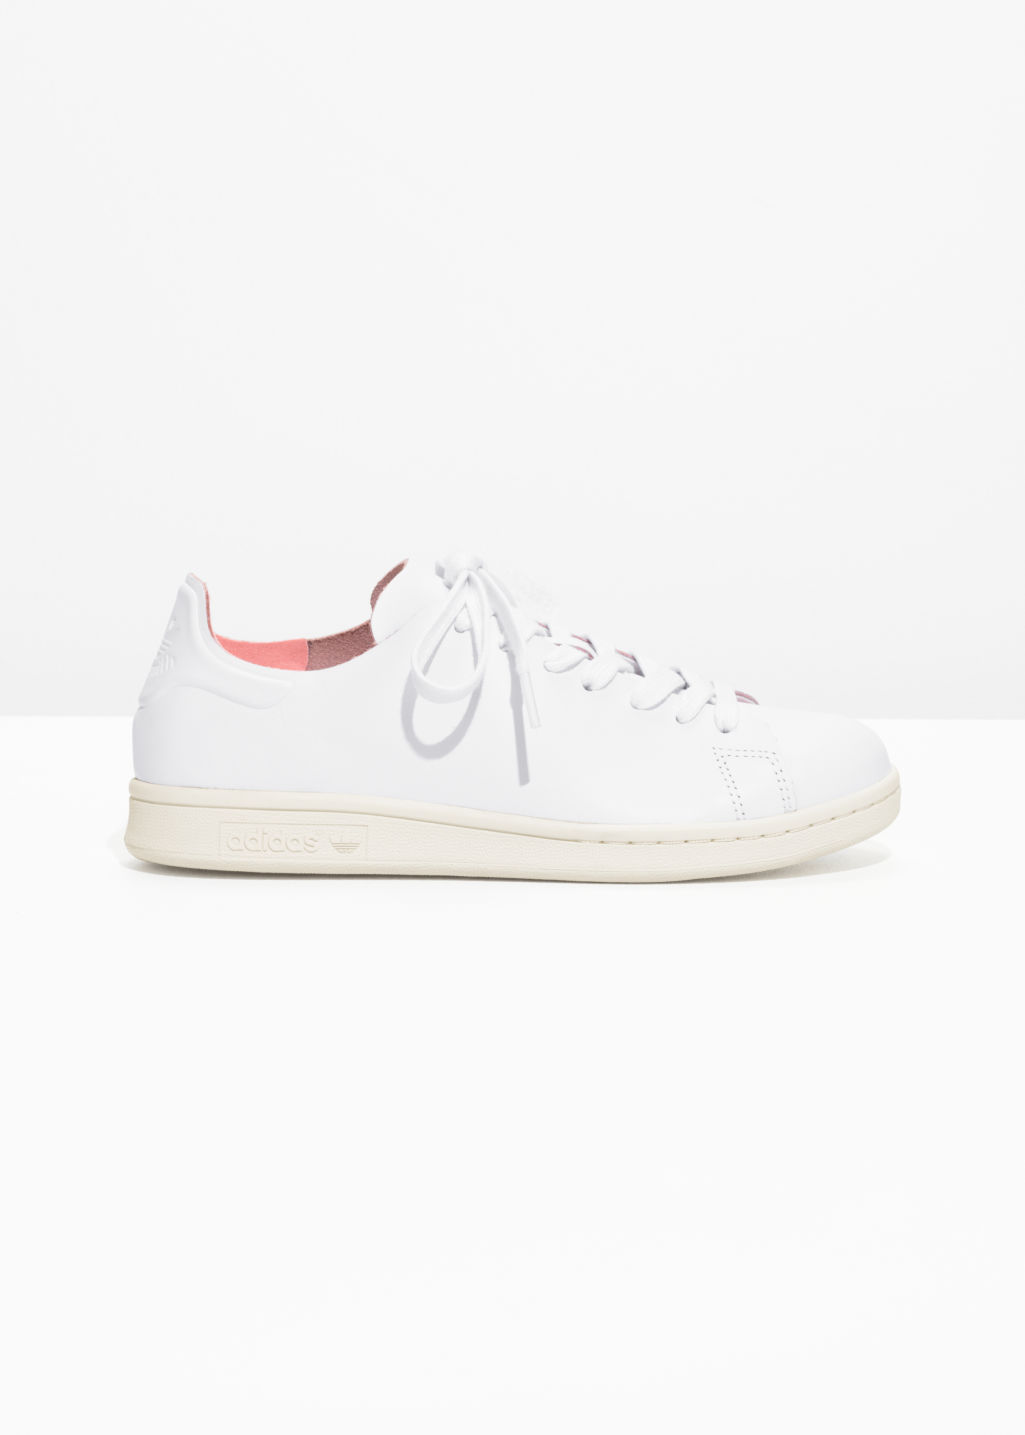 & OTHER STORIES Adidas Stan Smith Nude